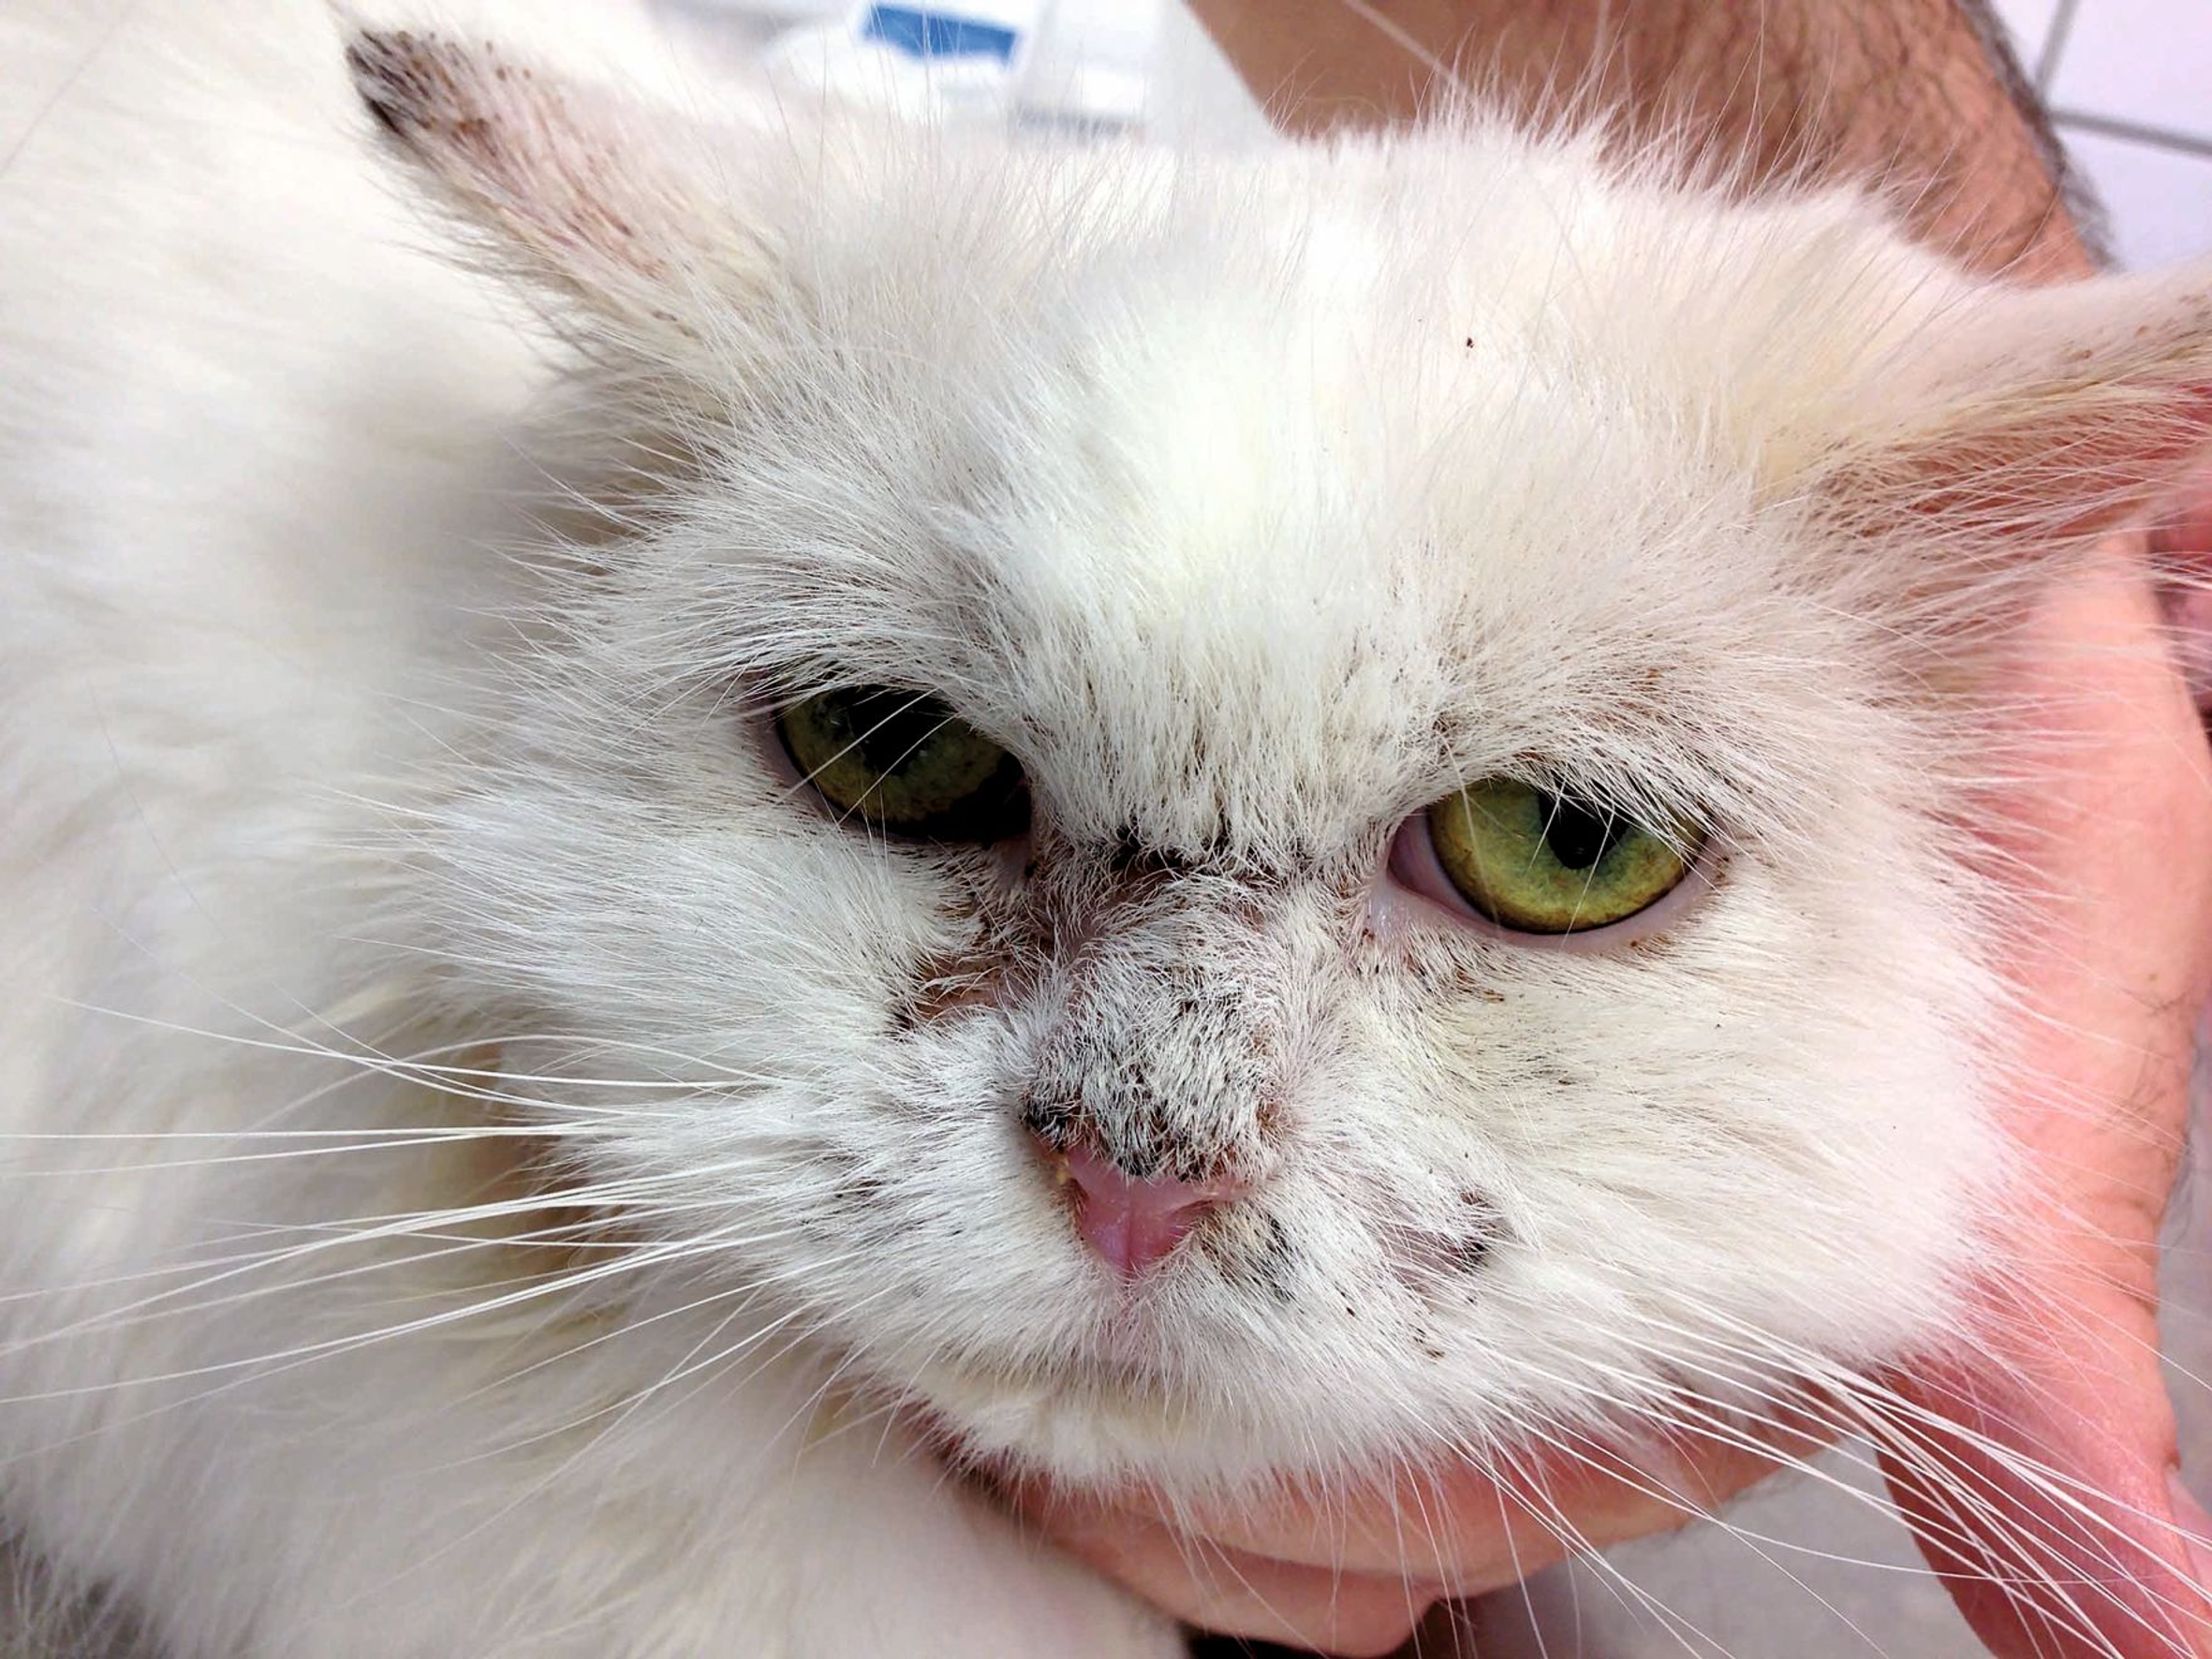 A DSH cat with nasal erythema, crusting and hair loss. The diagnosis was pemphigus foliaceus.